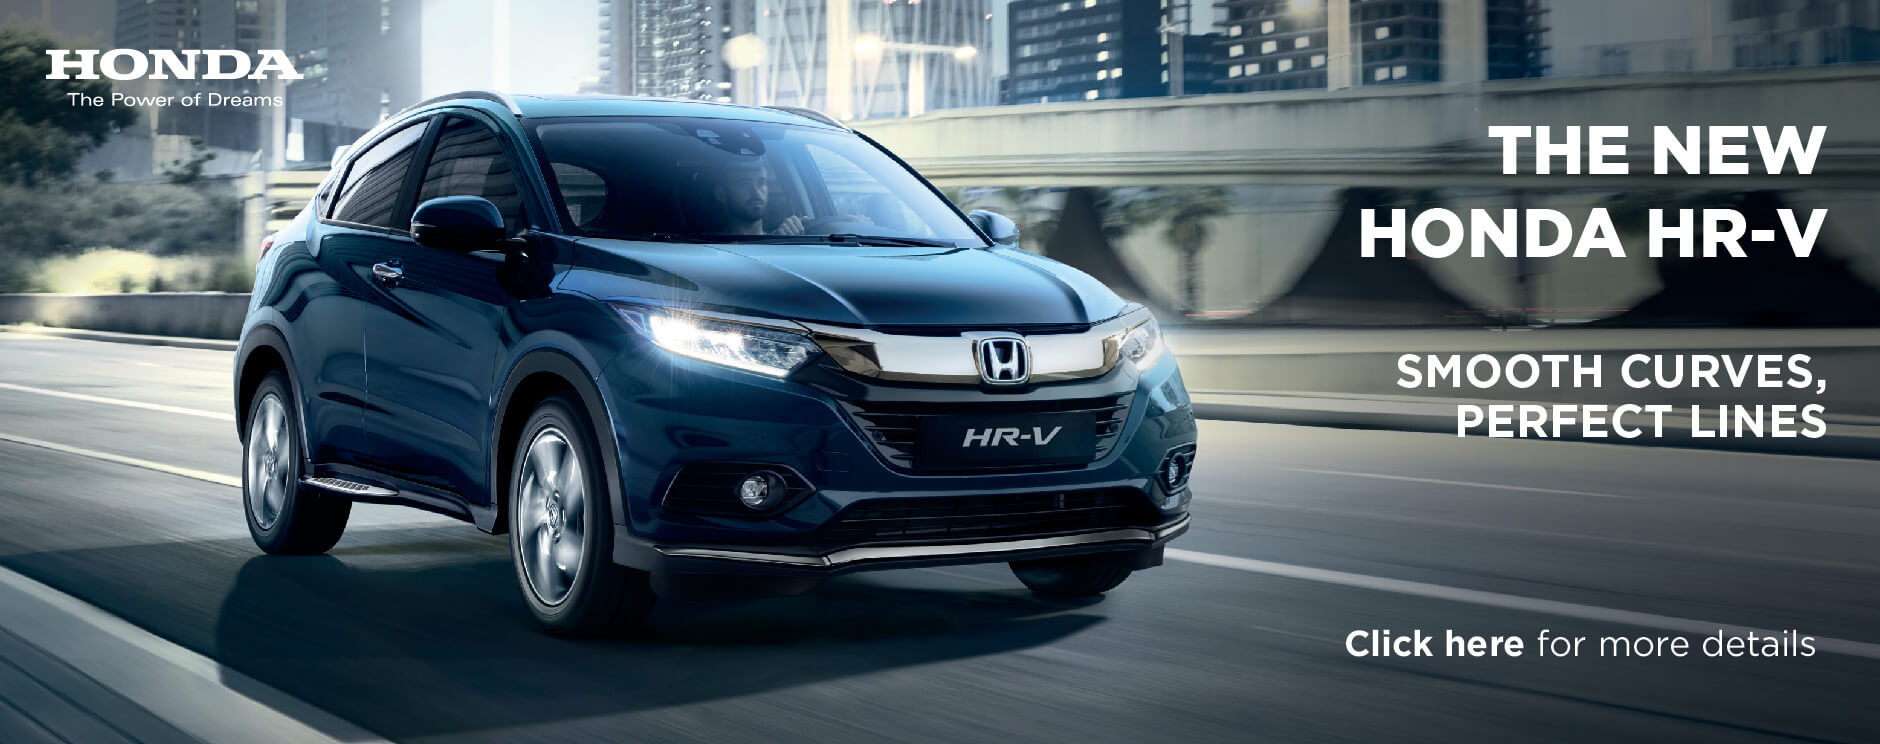 The New Honda HR-V BB